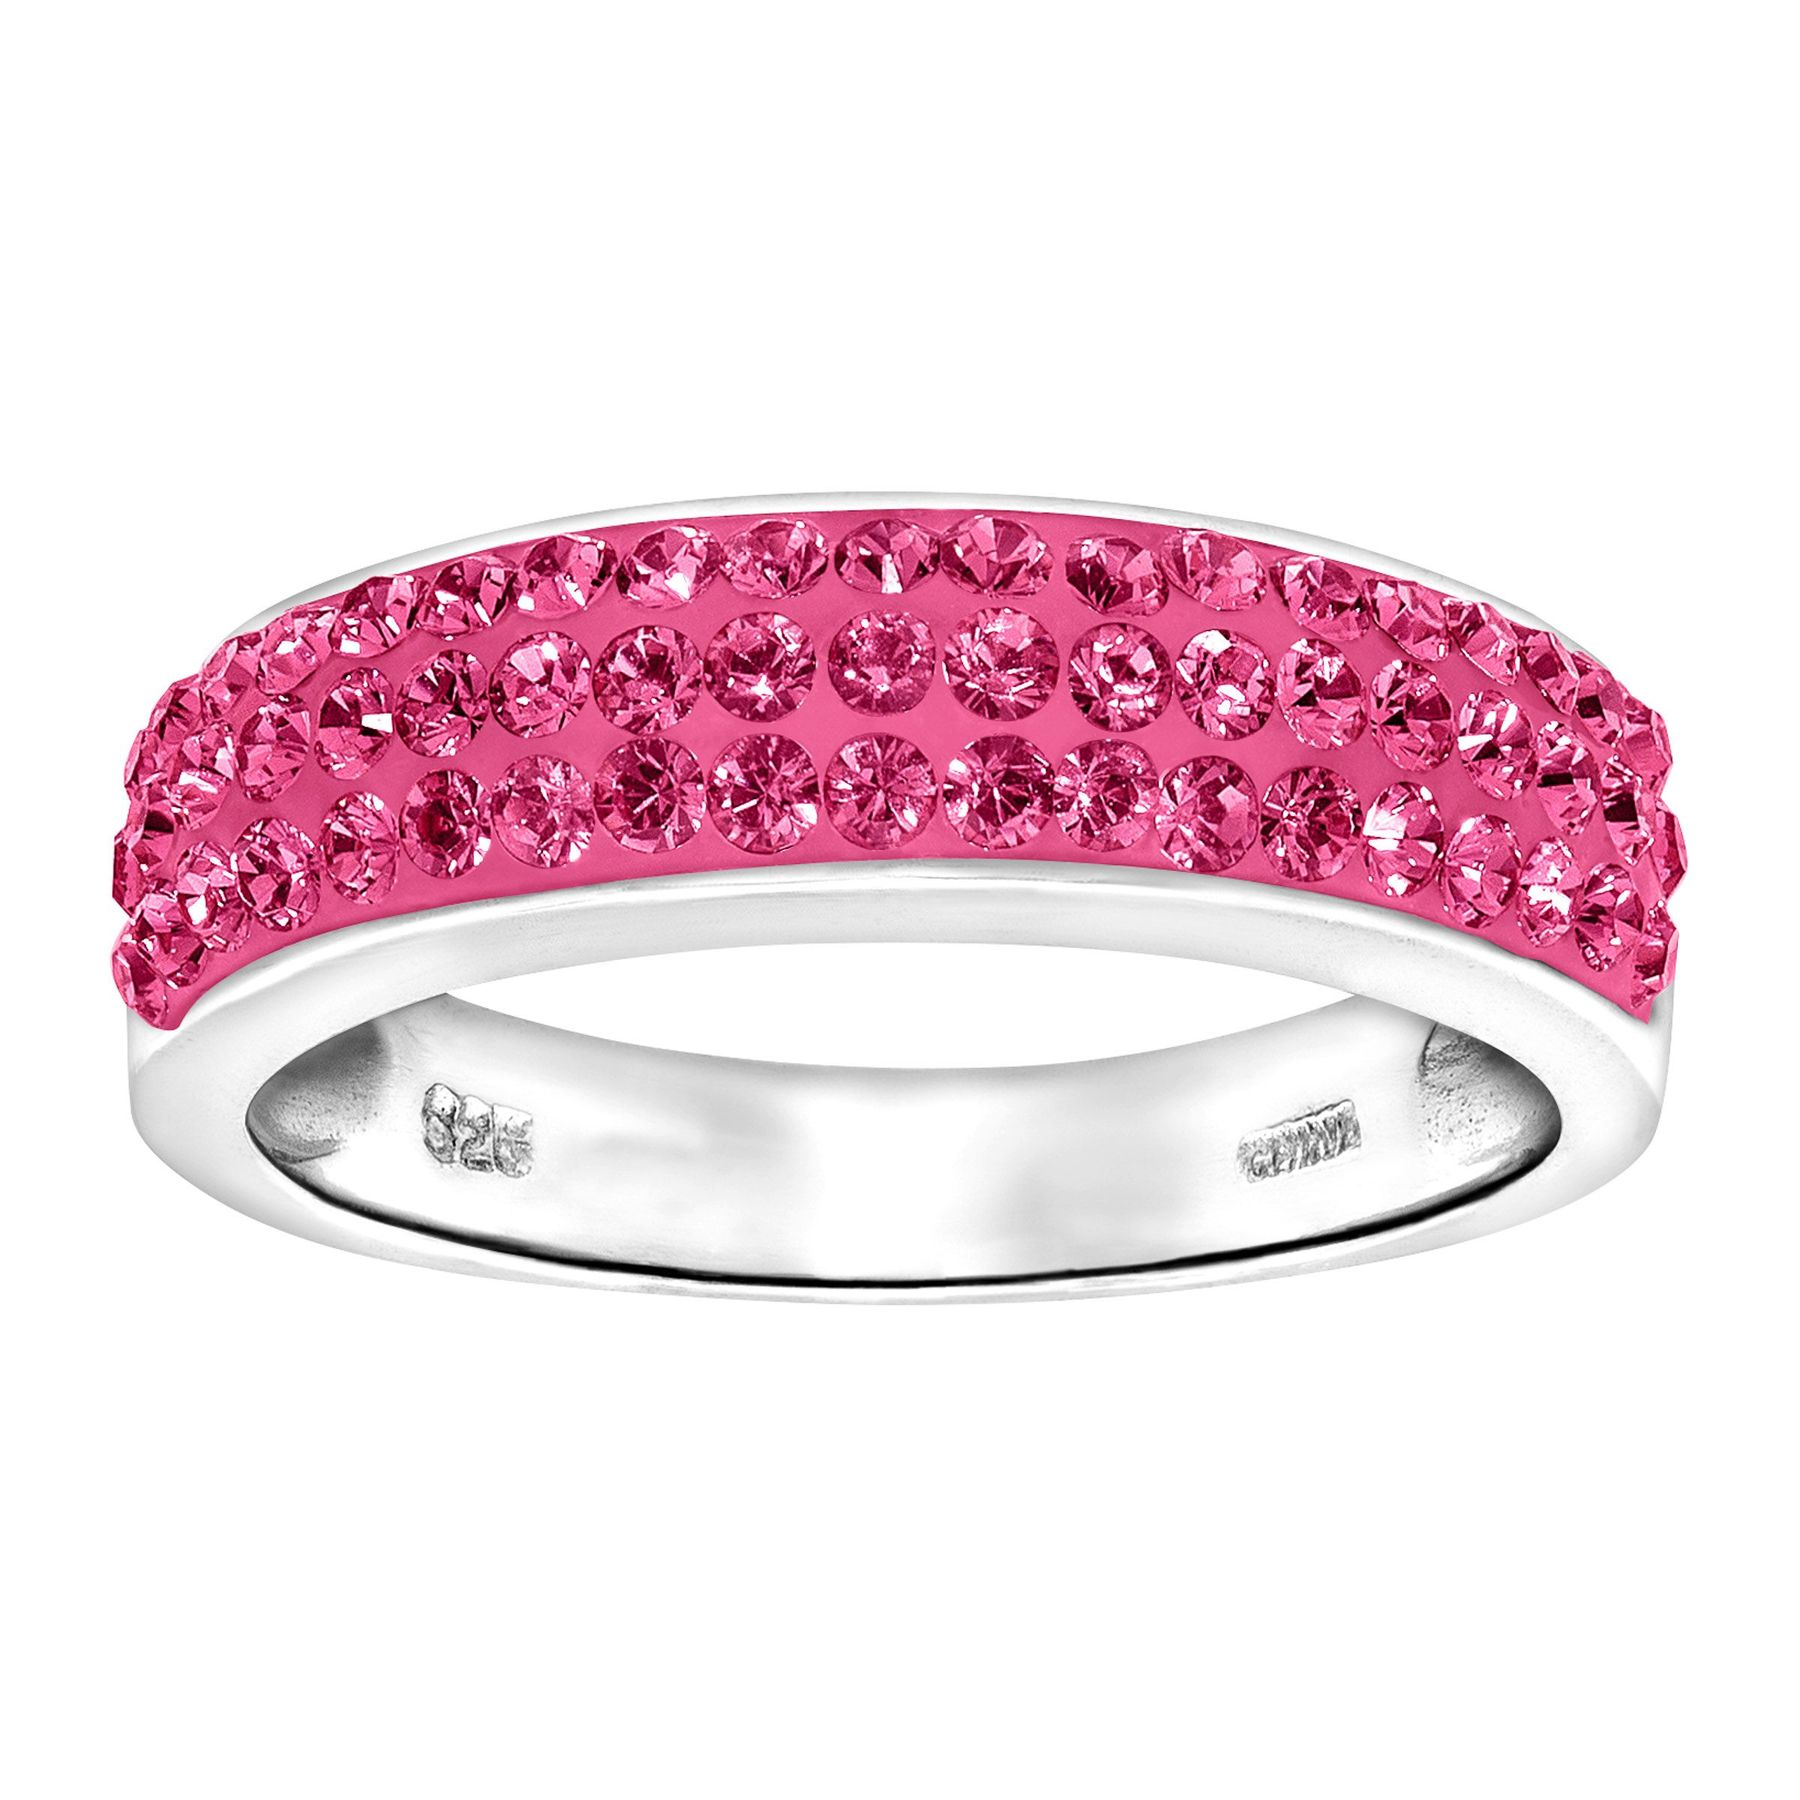 Crystaluxe Band Ring with Pink Swarovski Crystals in Sterling Silver ...